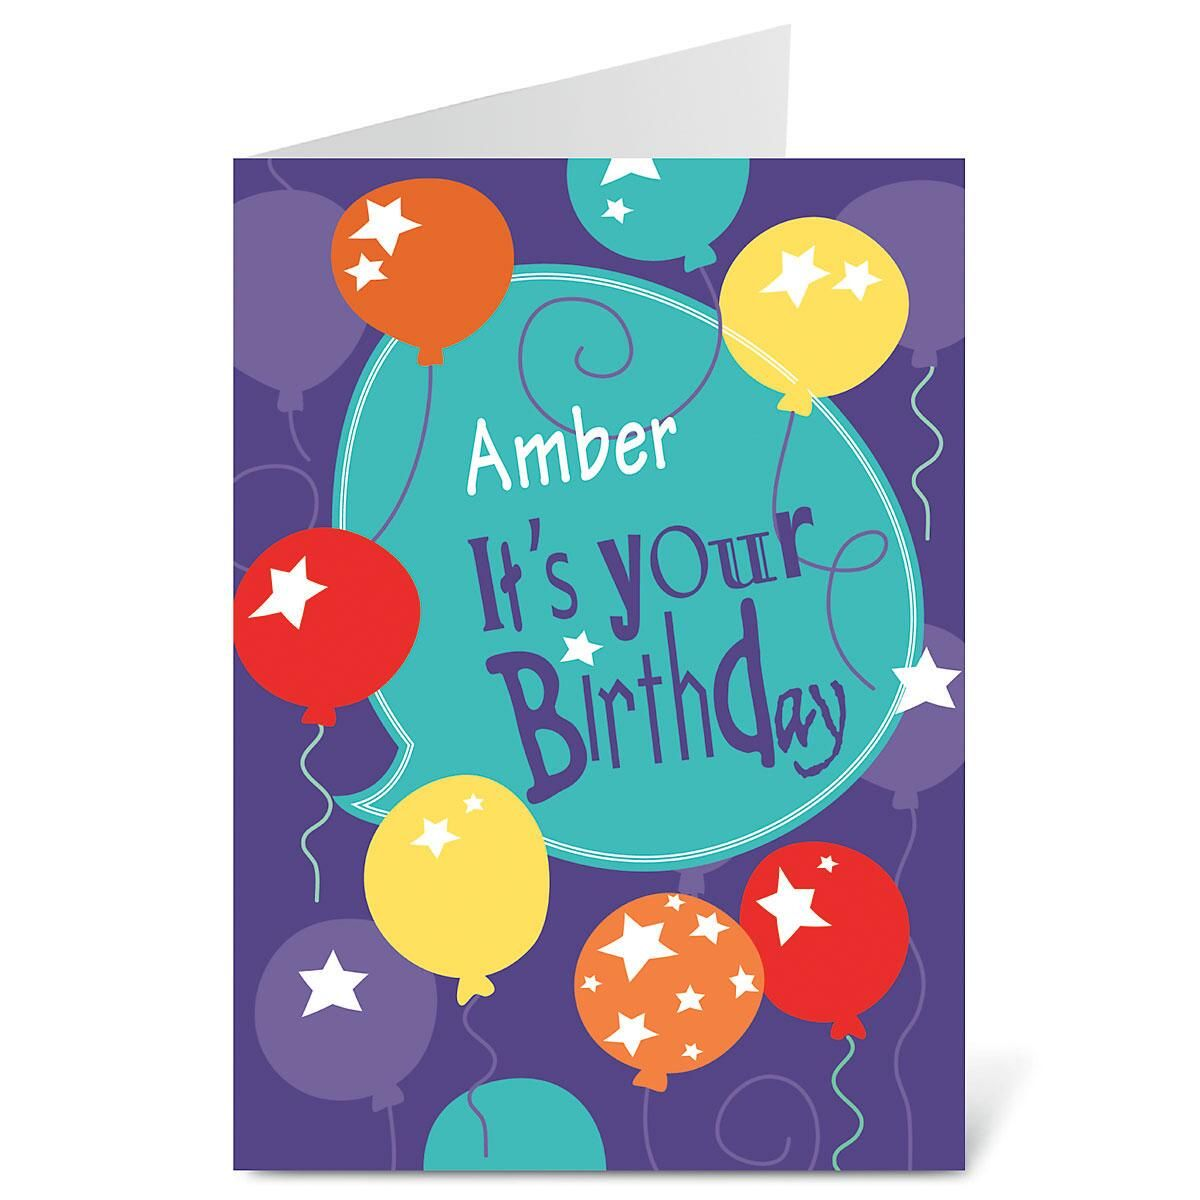 Celebrating You Birthday Create-A-Card